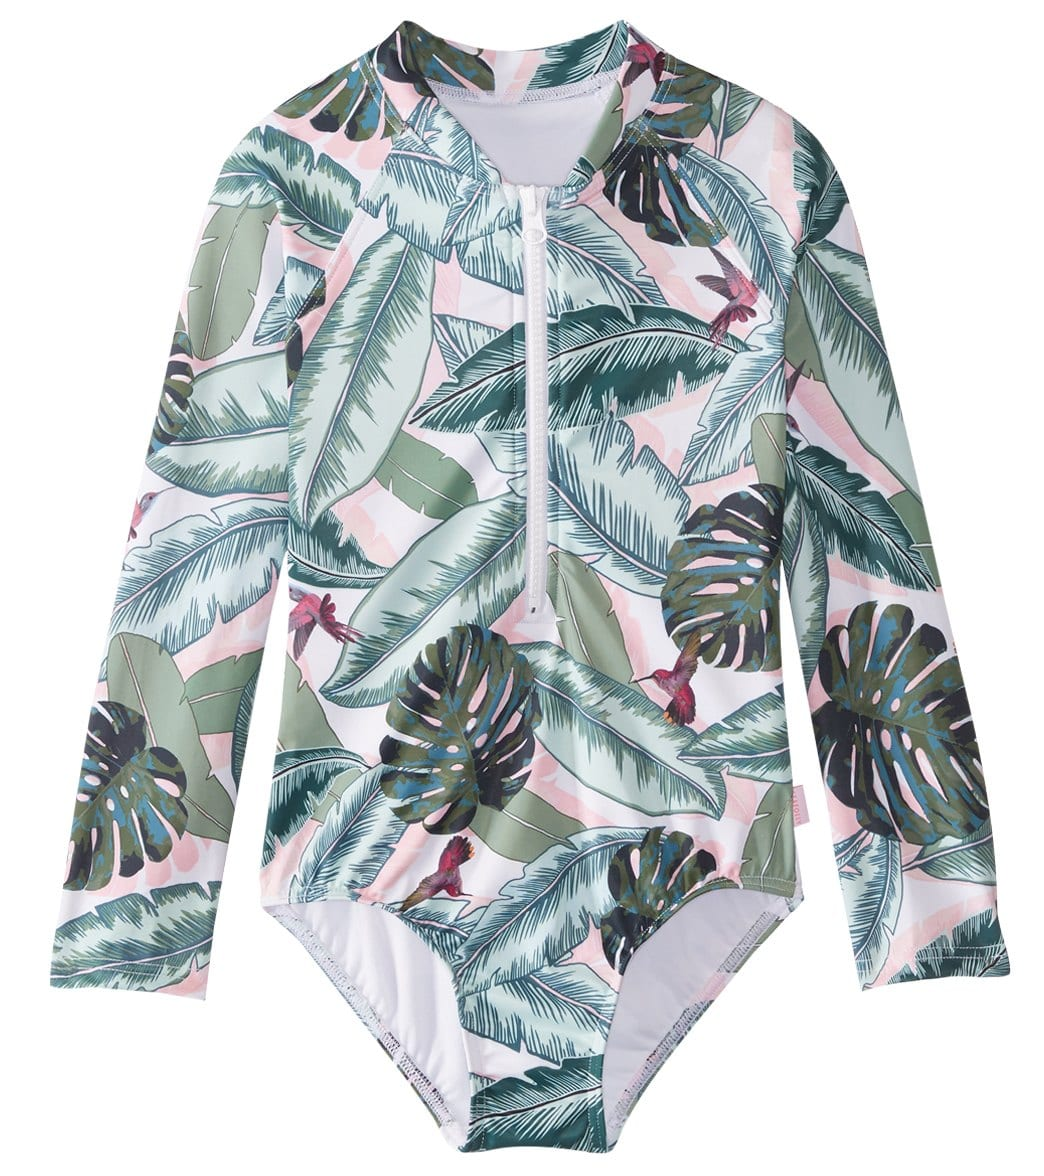 f241b4fa59 Seafolly Girls' Palm Beach Long Sleeve One Piece Swimsuit (Big Kid) at  SwimOutlet.com - Free Shipping